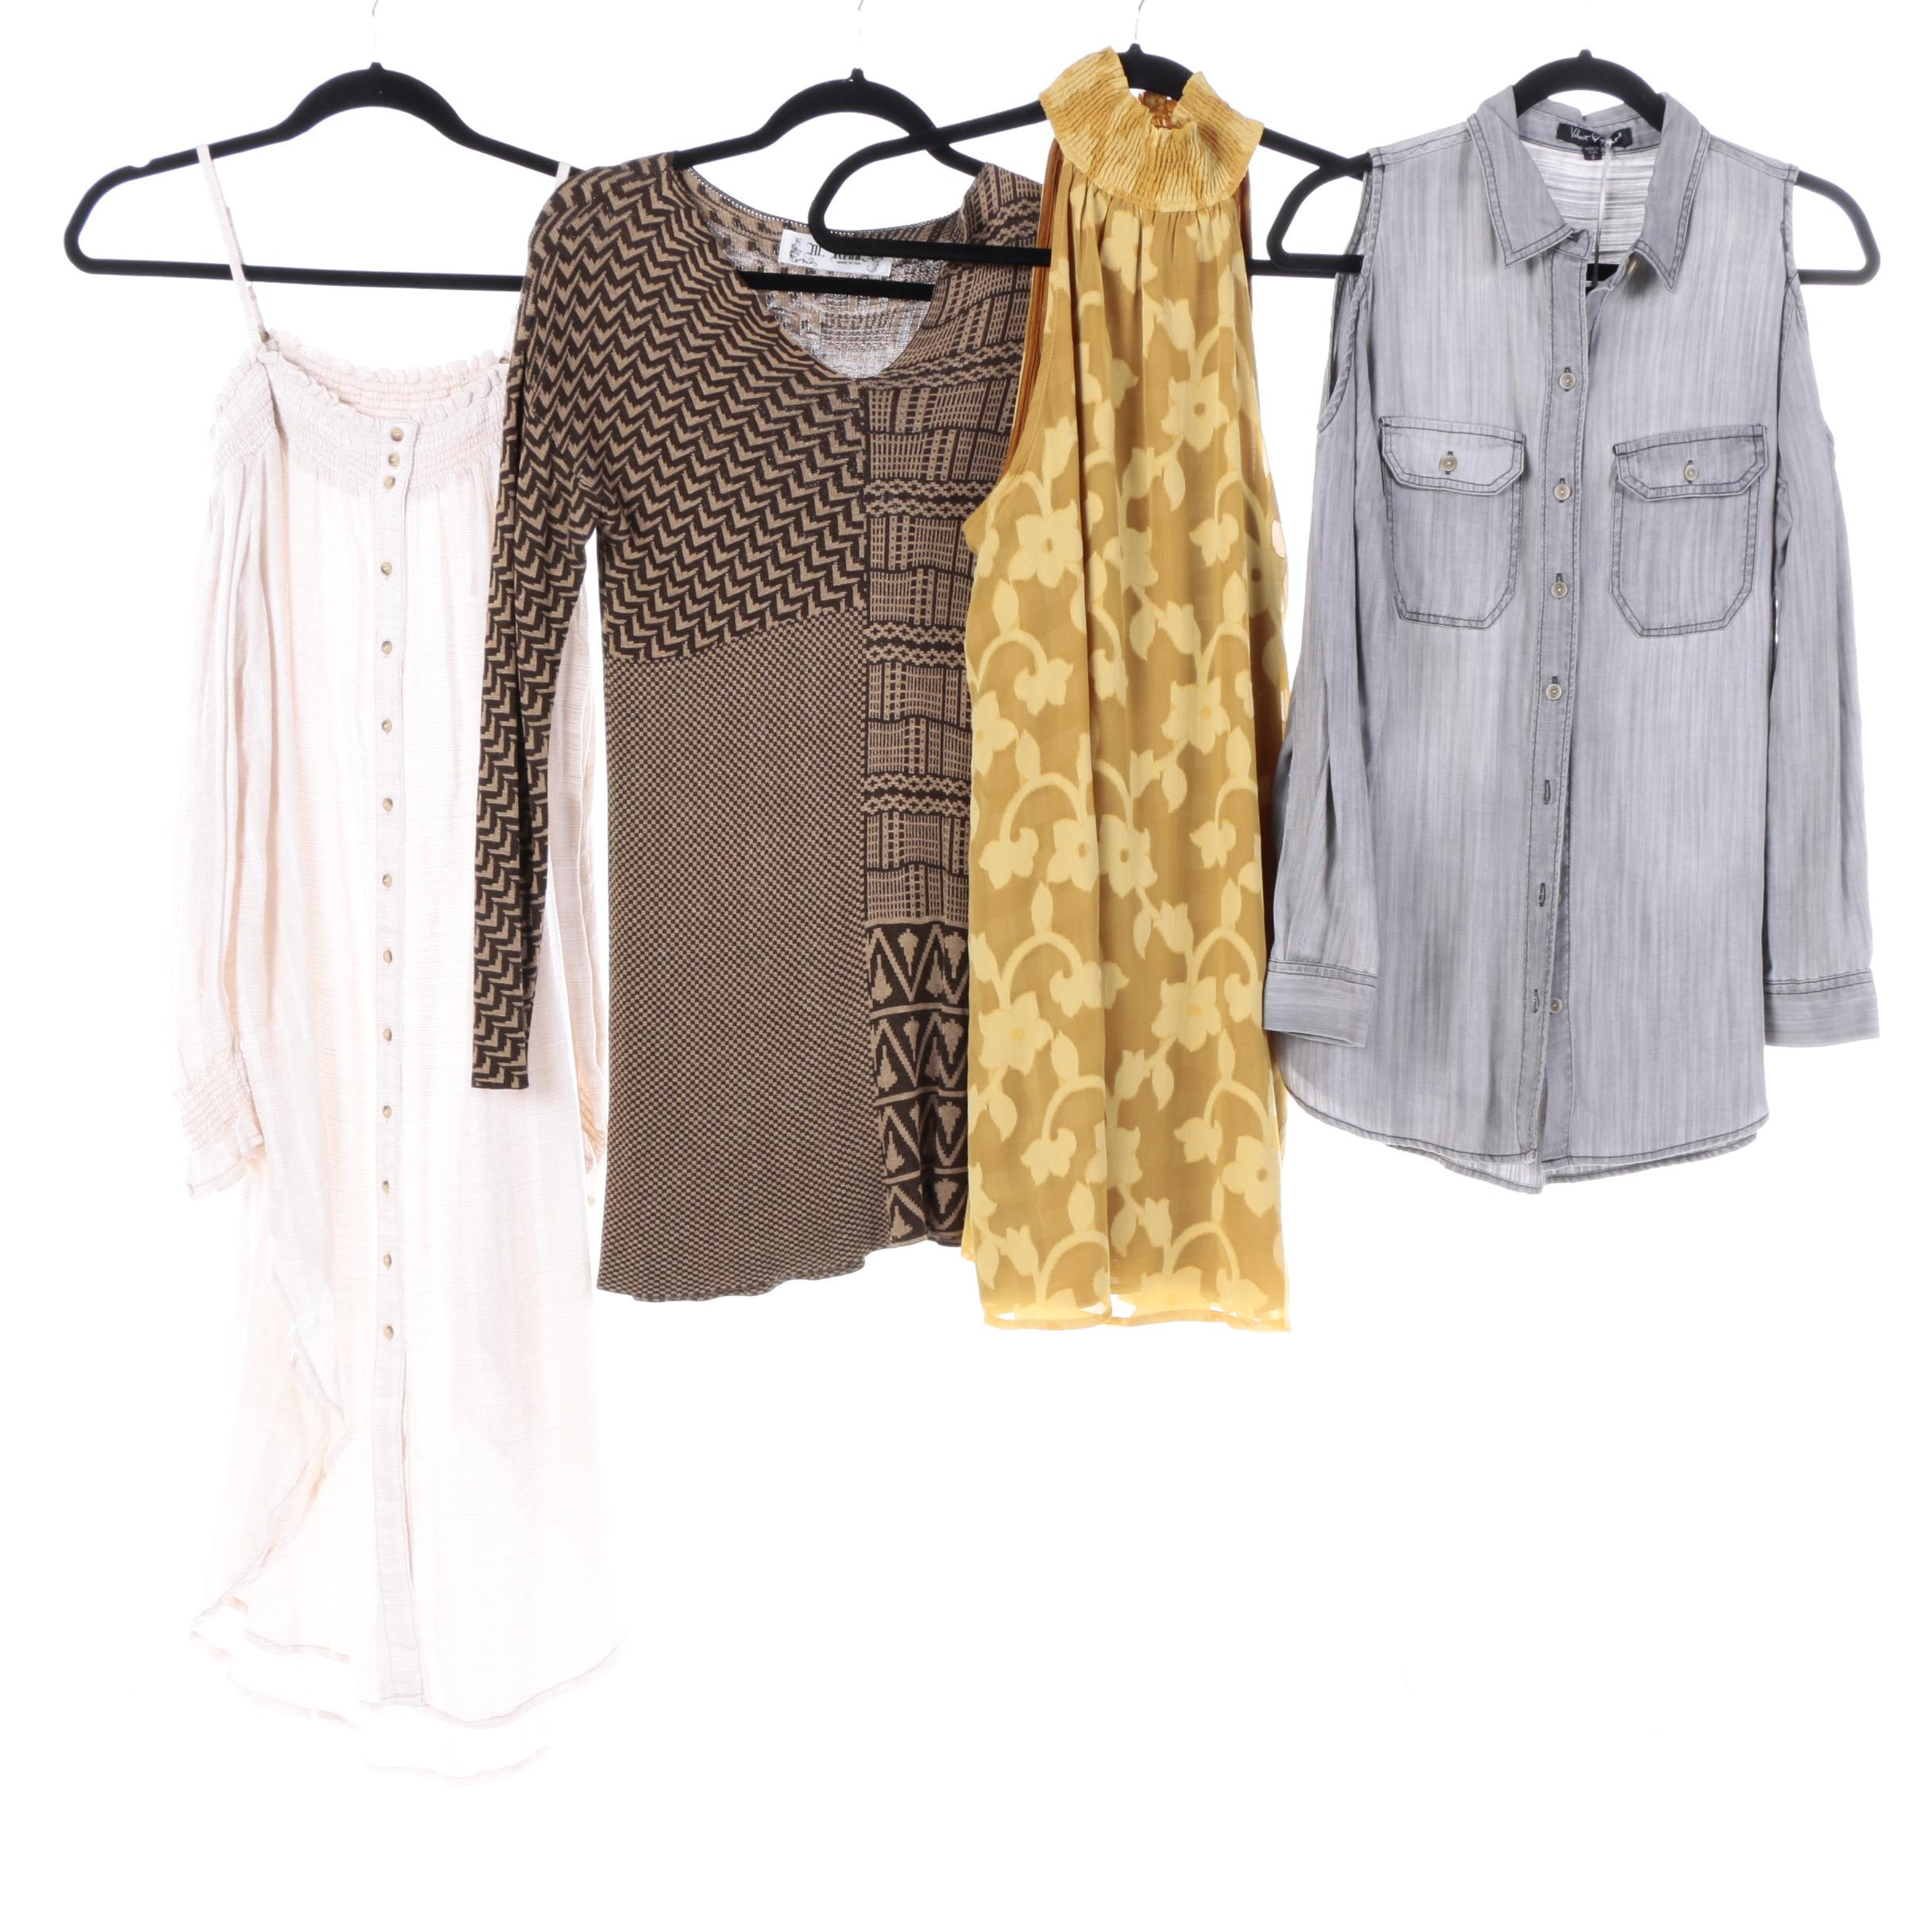 Women's Shirts and Dresses Including Free People and Velvet Heart